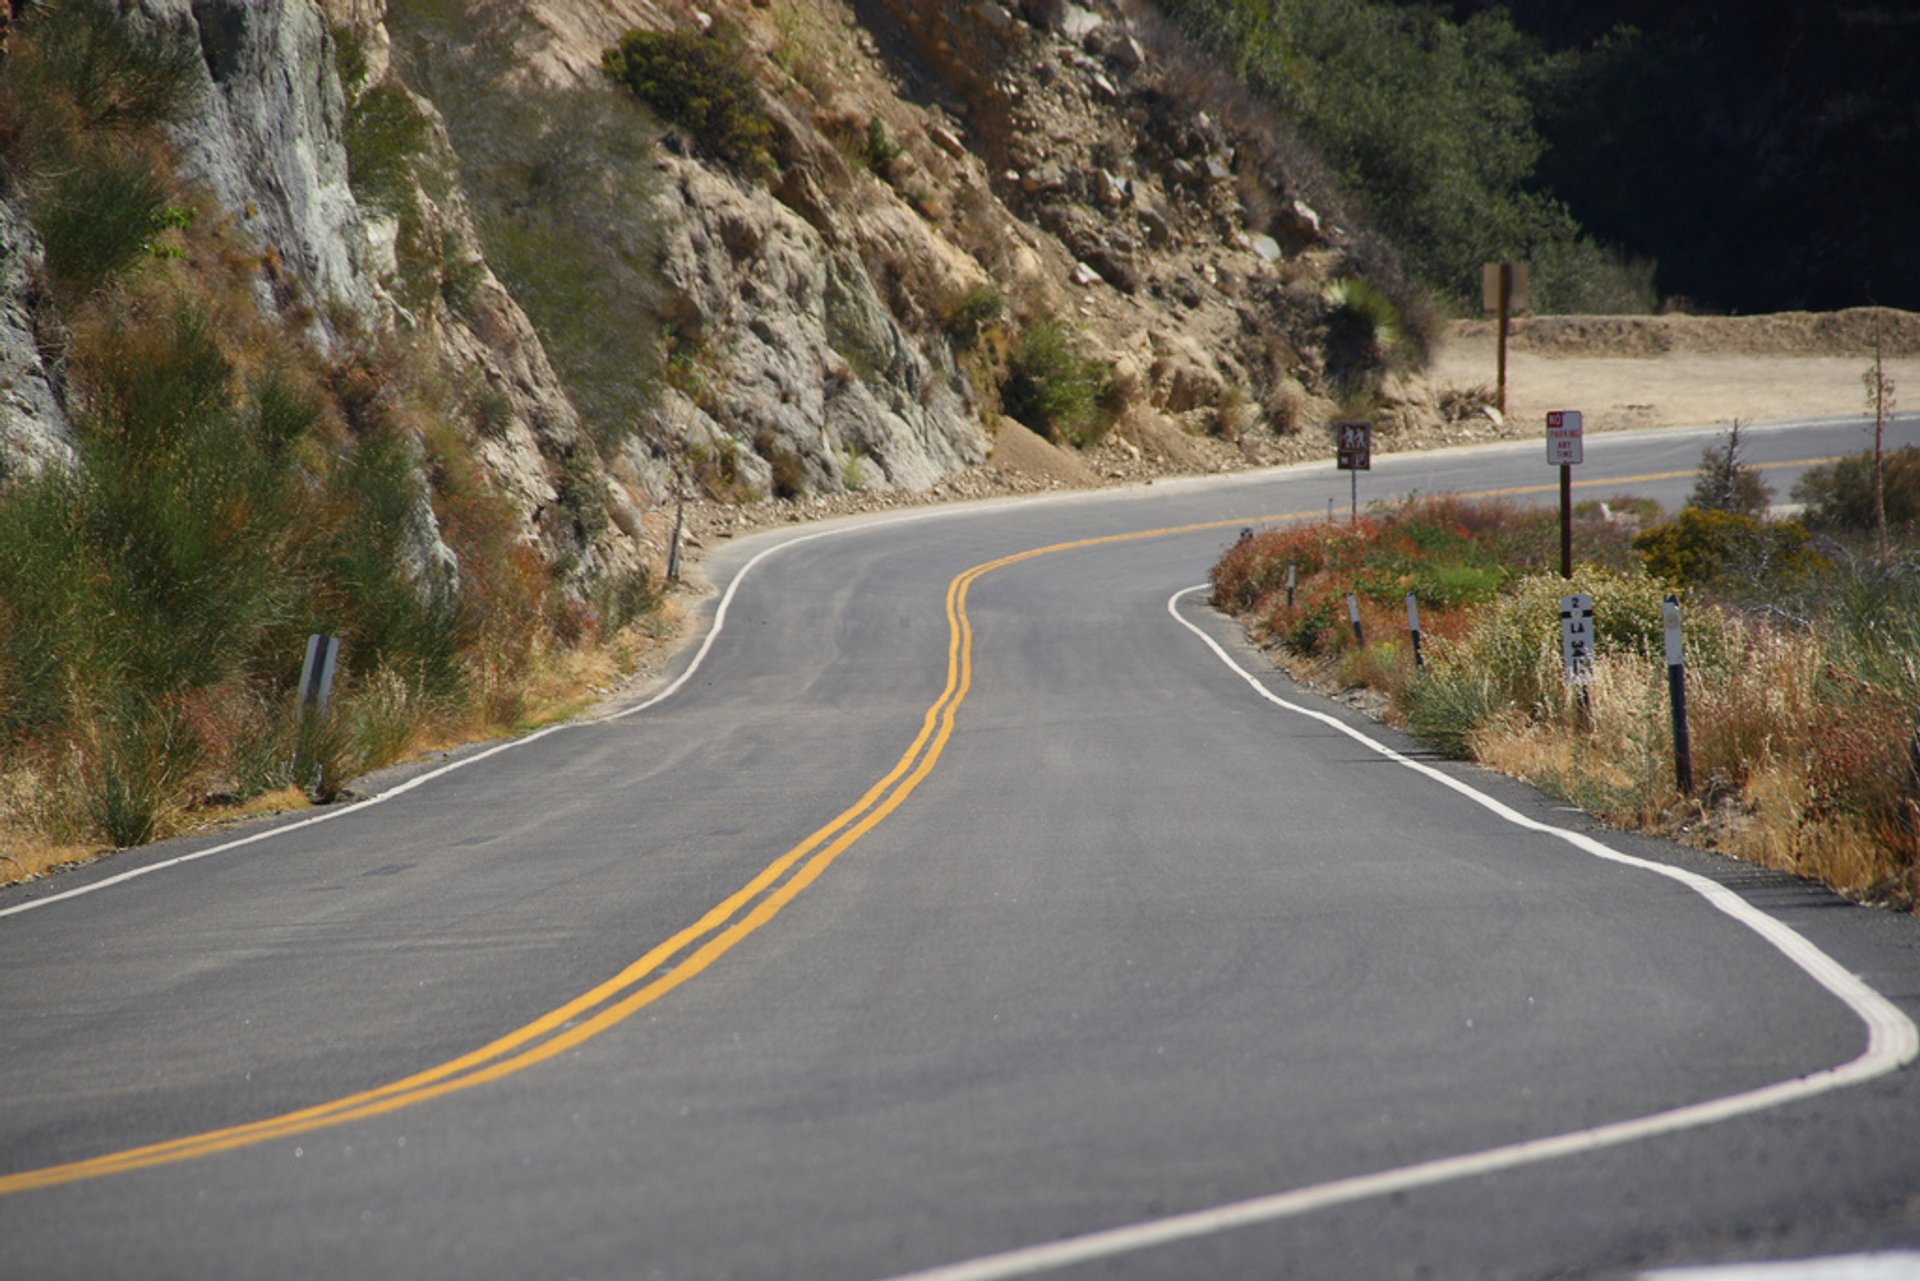 Angeles Crest Highway in Los Angeles 2020 - Best Time